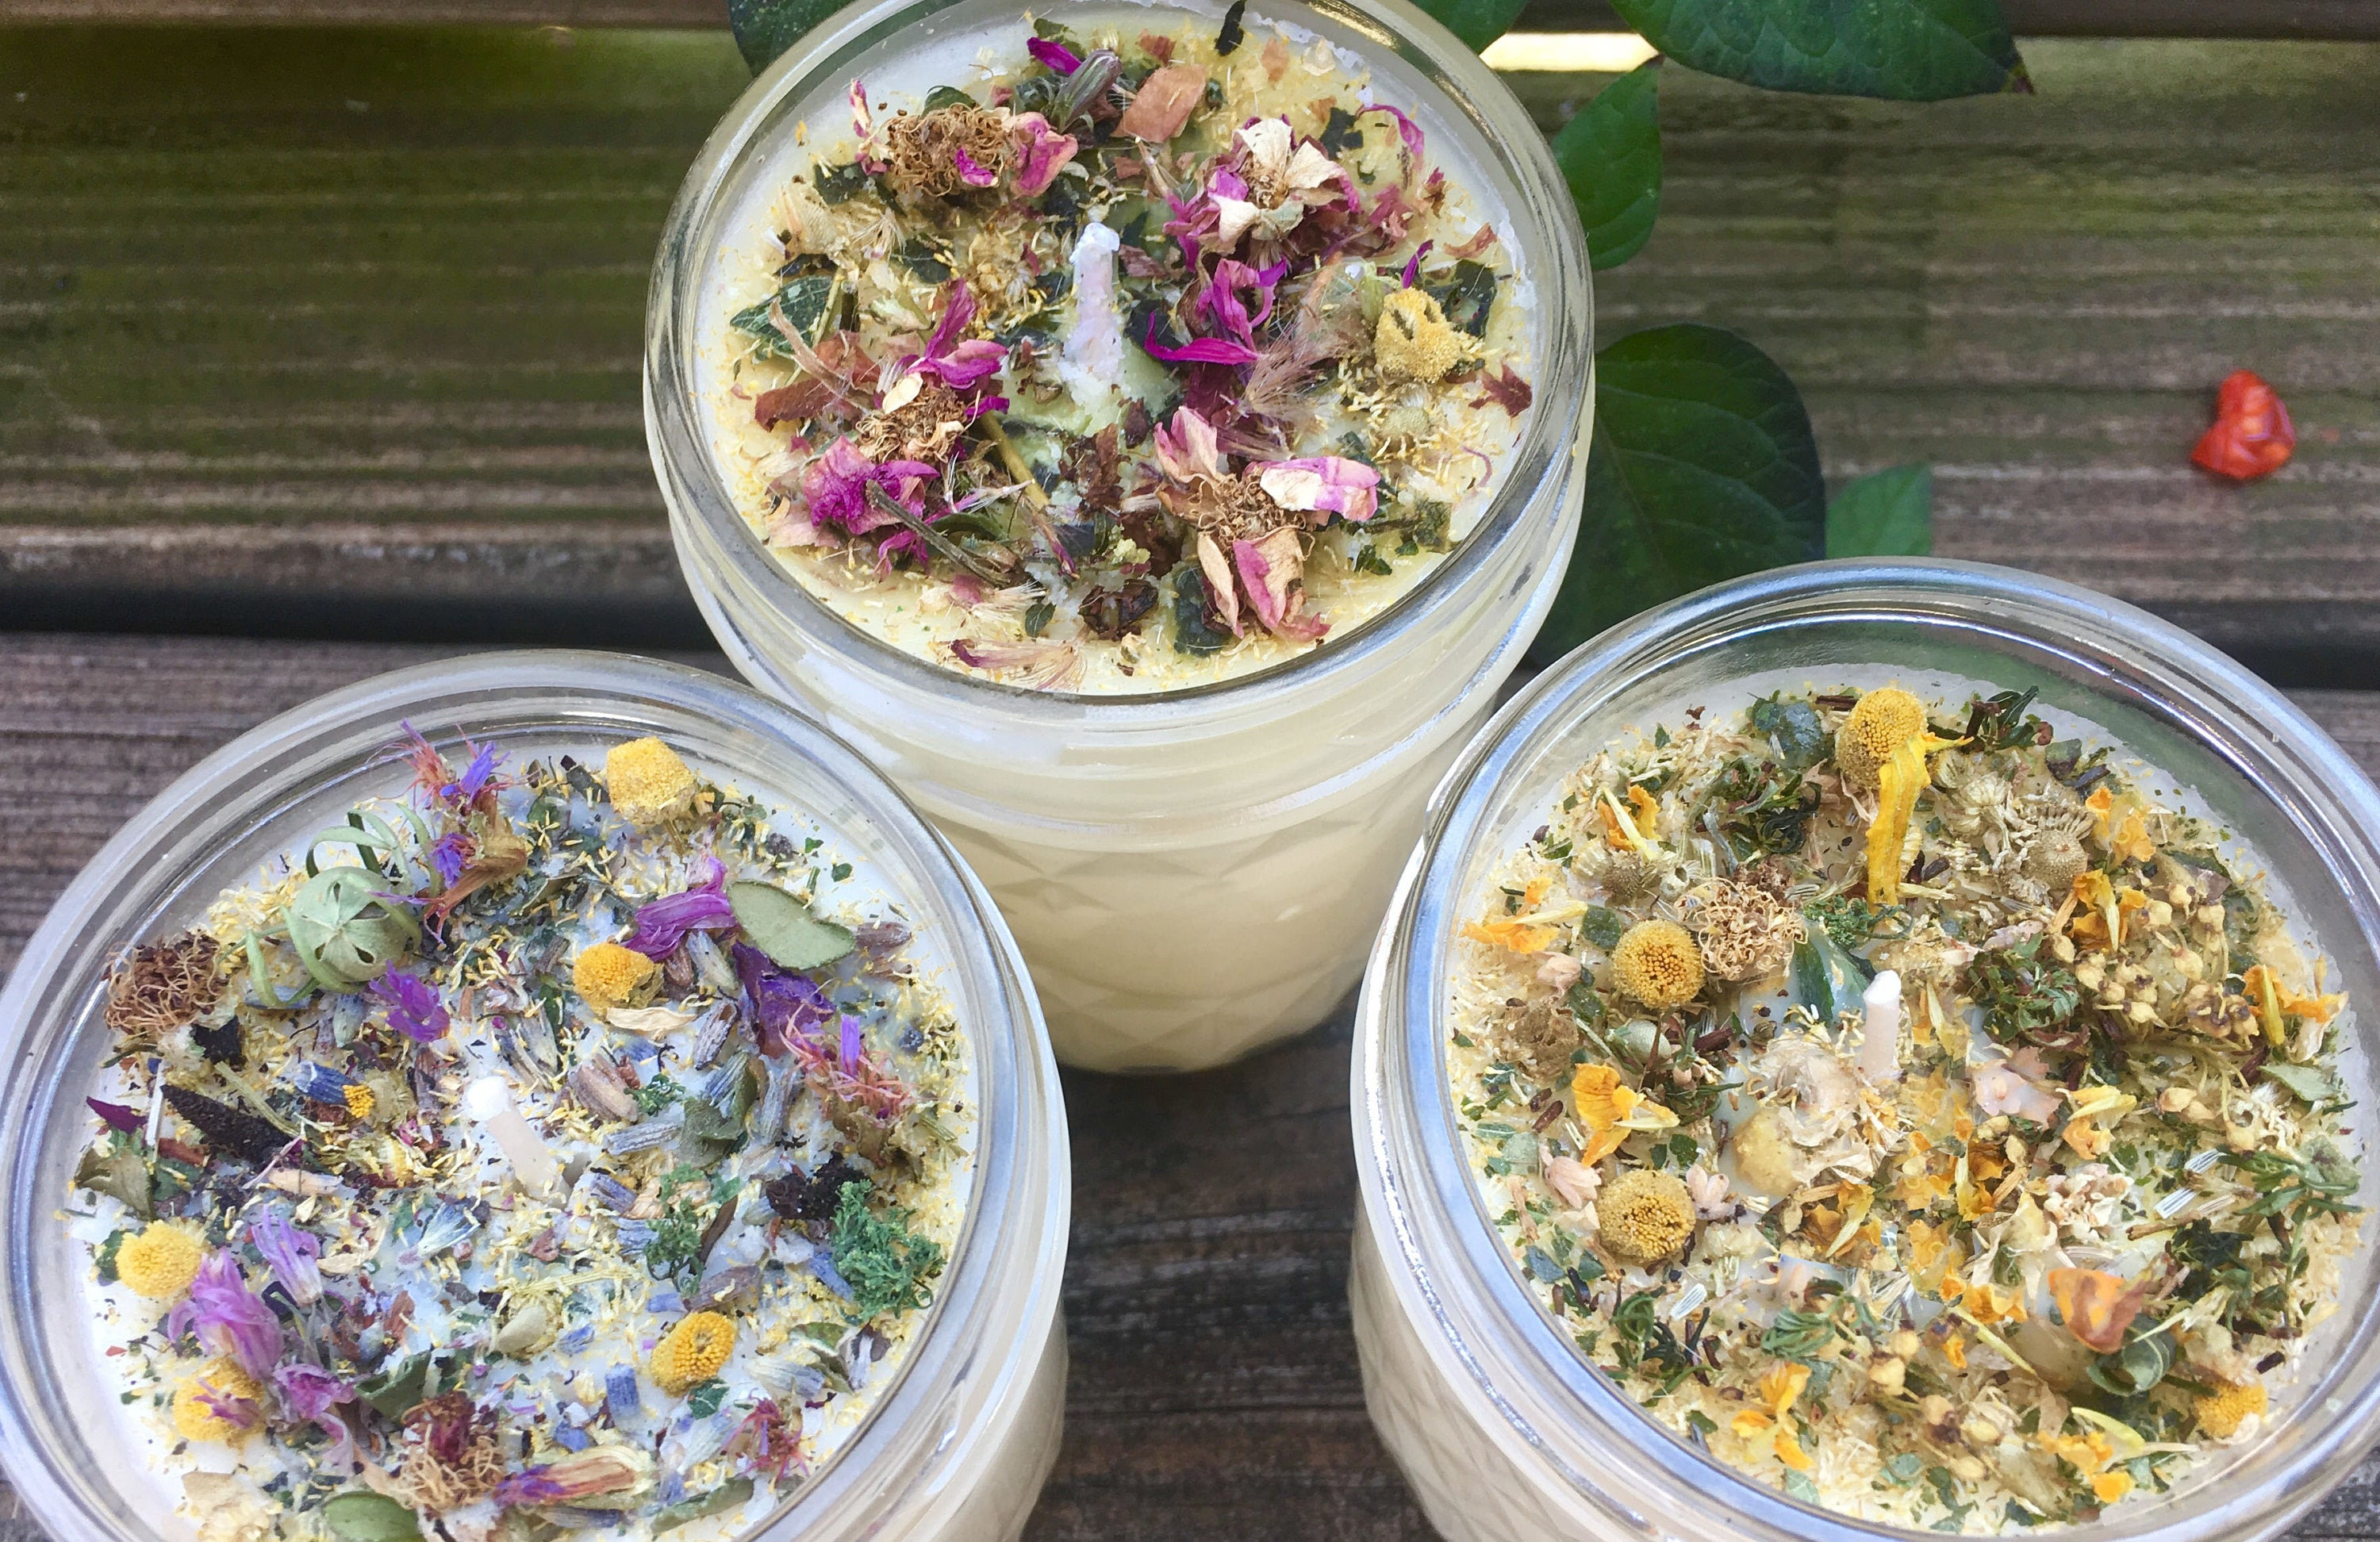 all natural aromatherapy candle with organic herbs & flowers, Badezimmer ideen